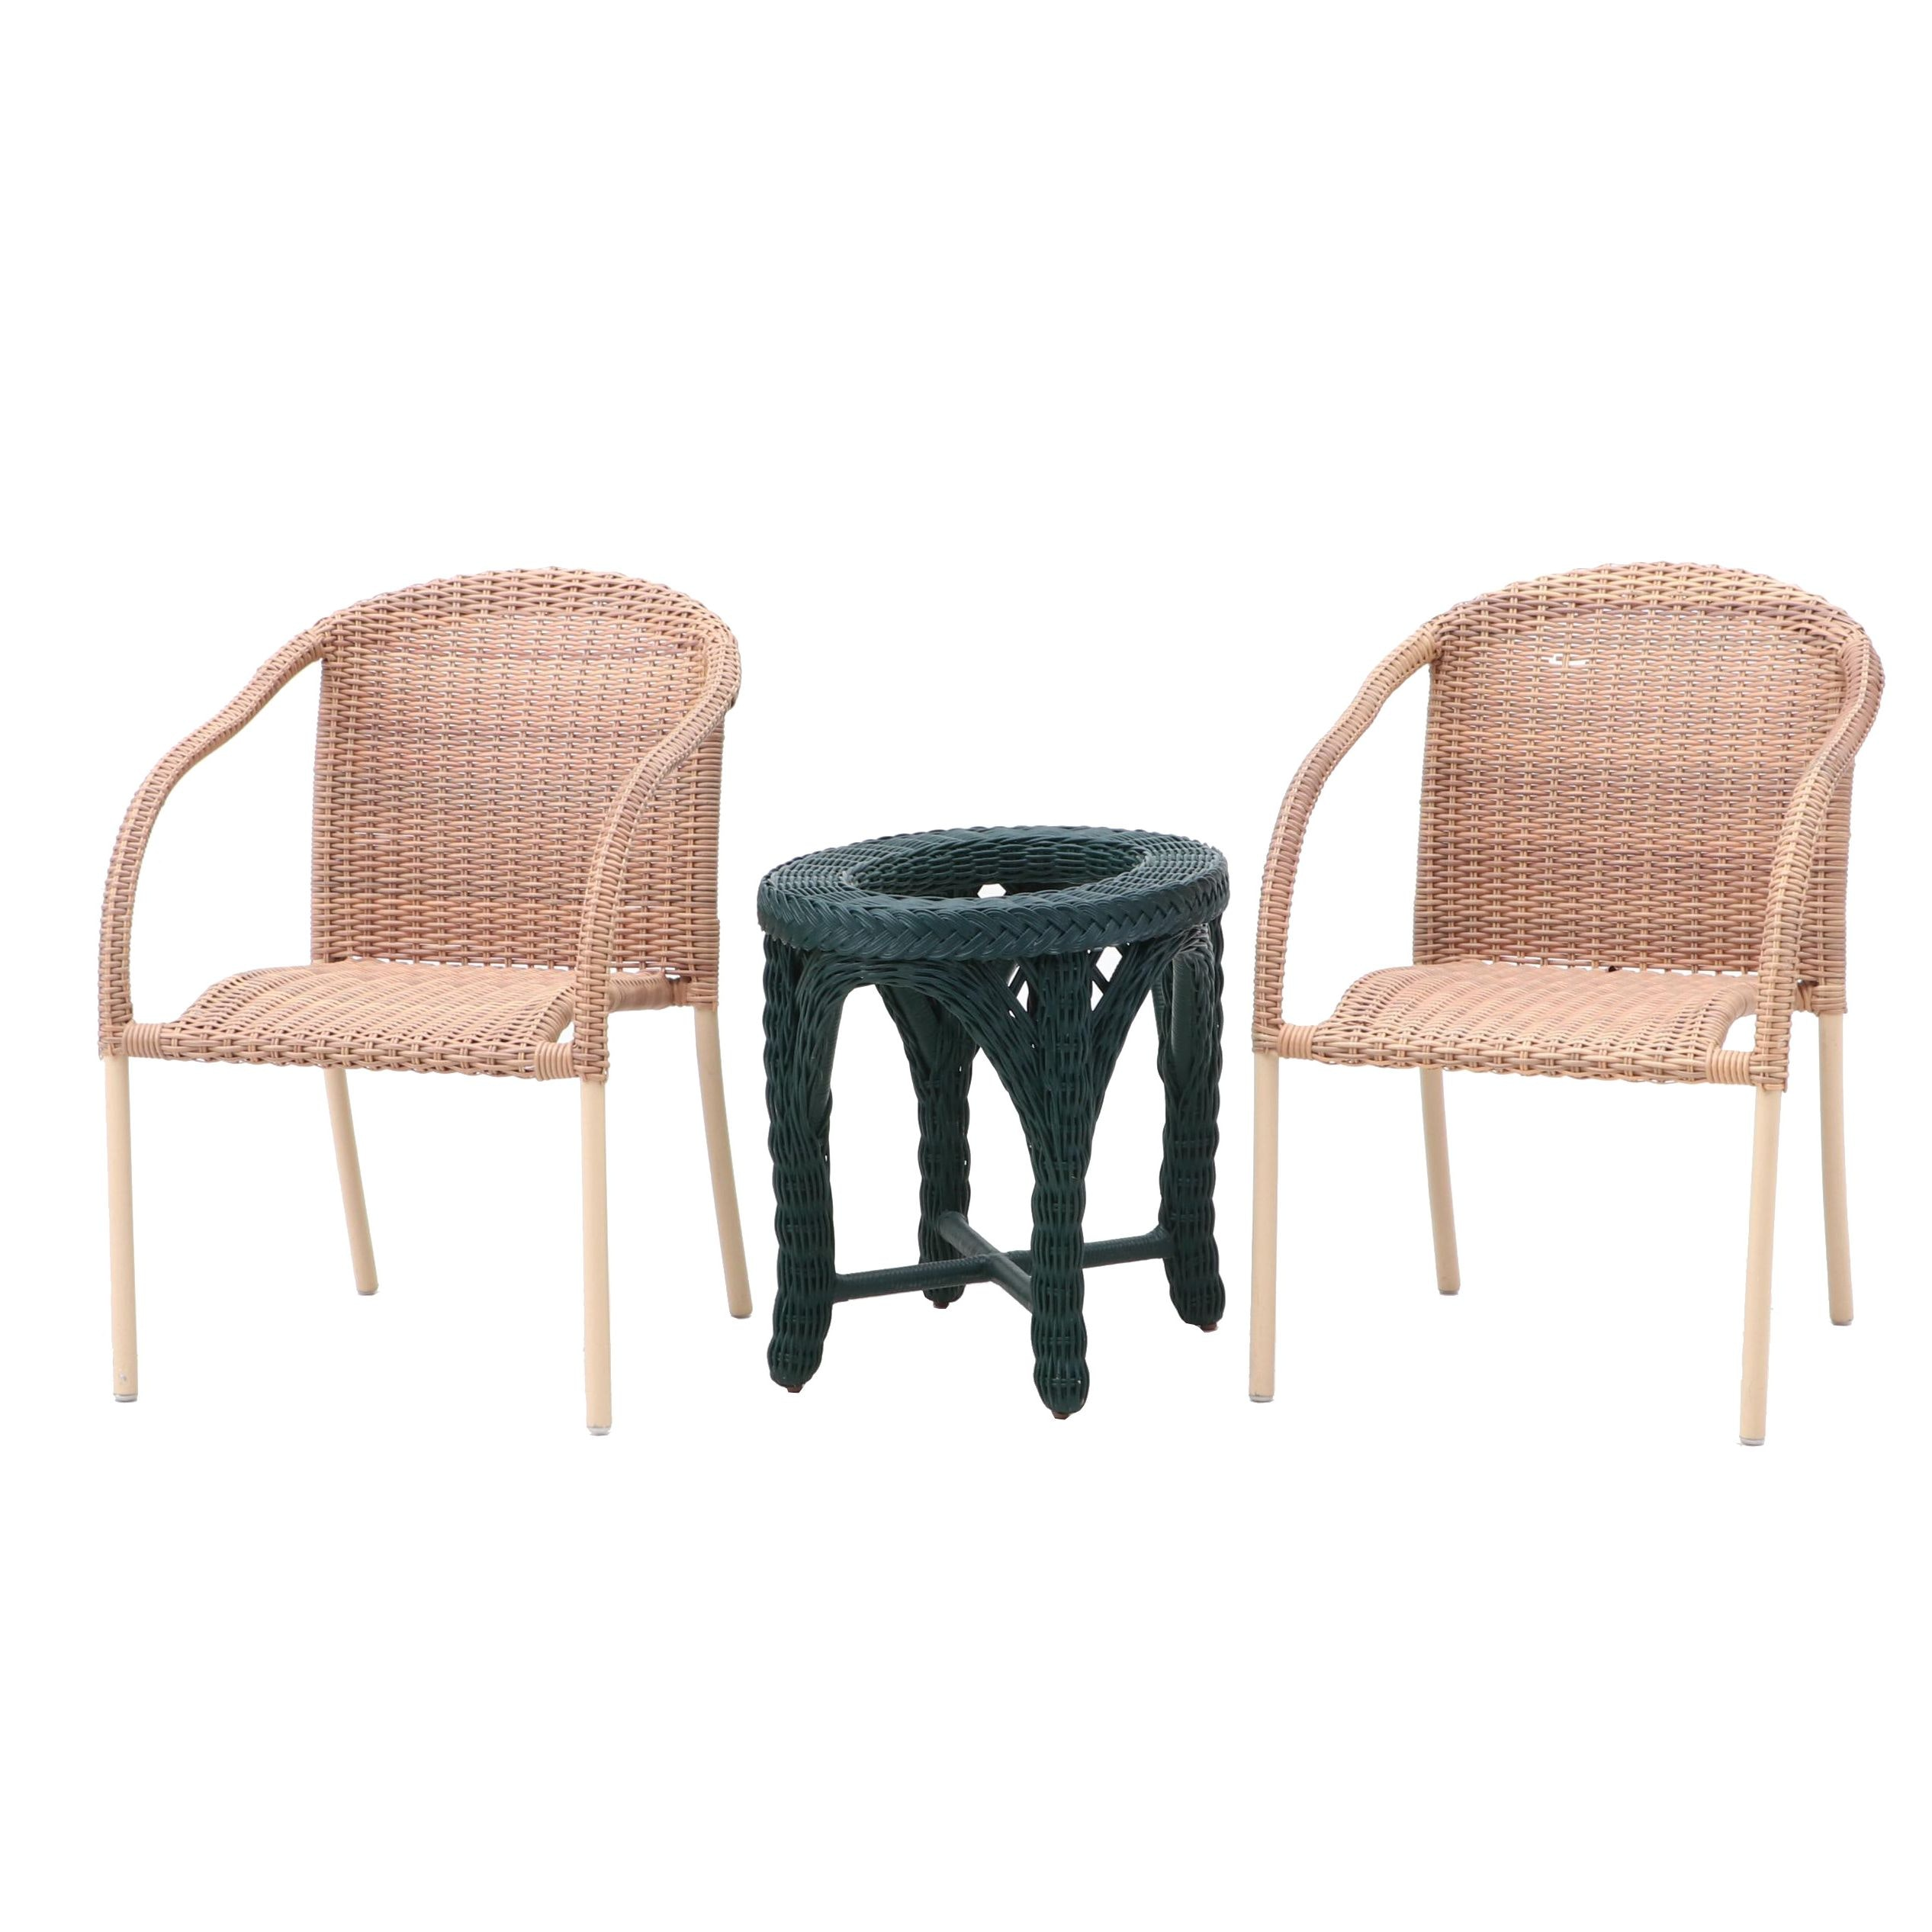 Woven Wicker Patio Arm Chairs and Oval Table